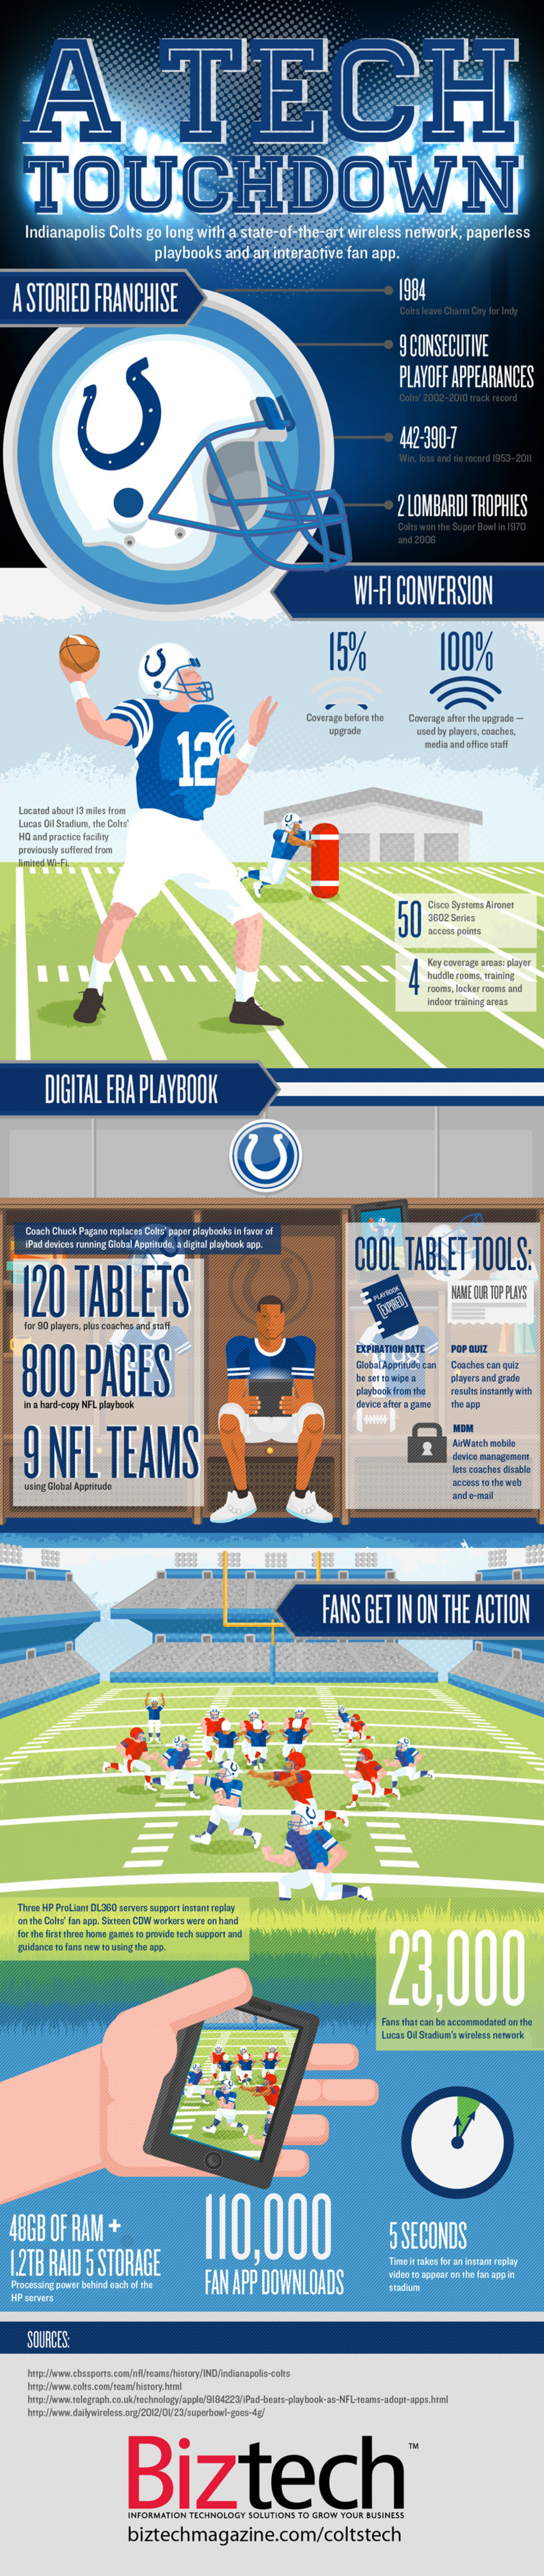 A Tech Touchdown Infographic